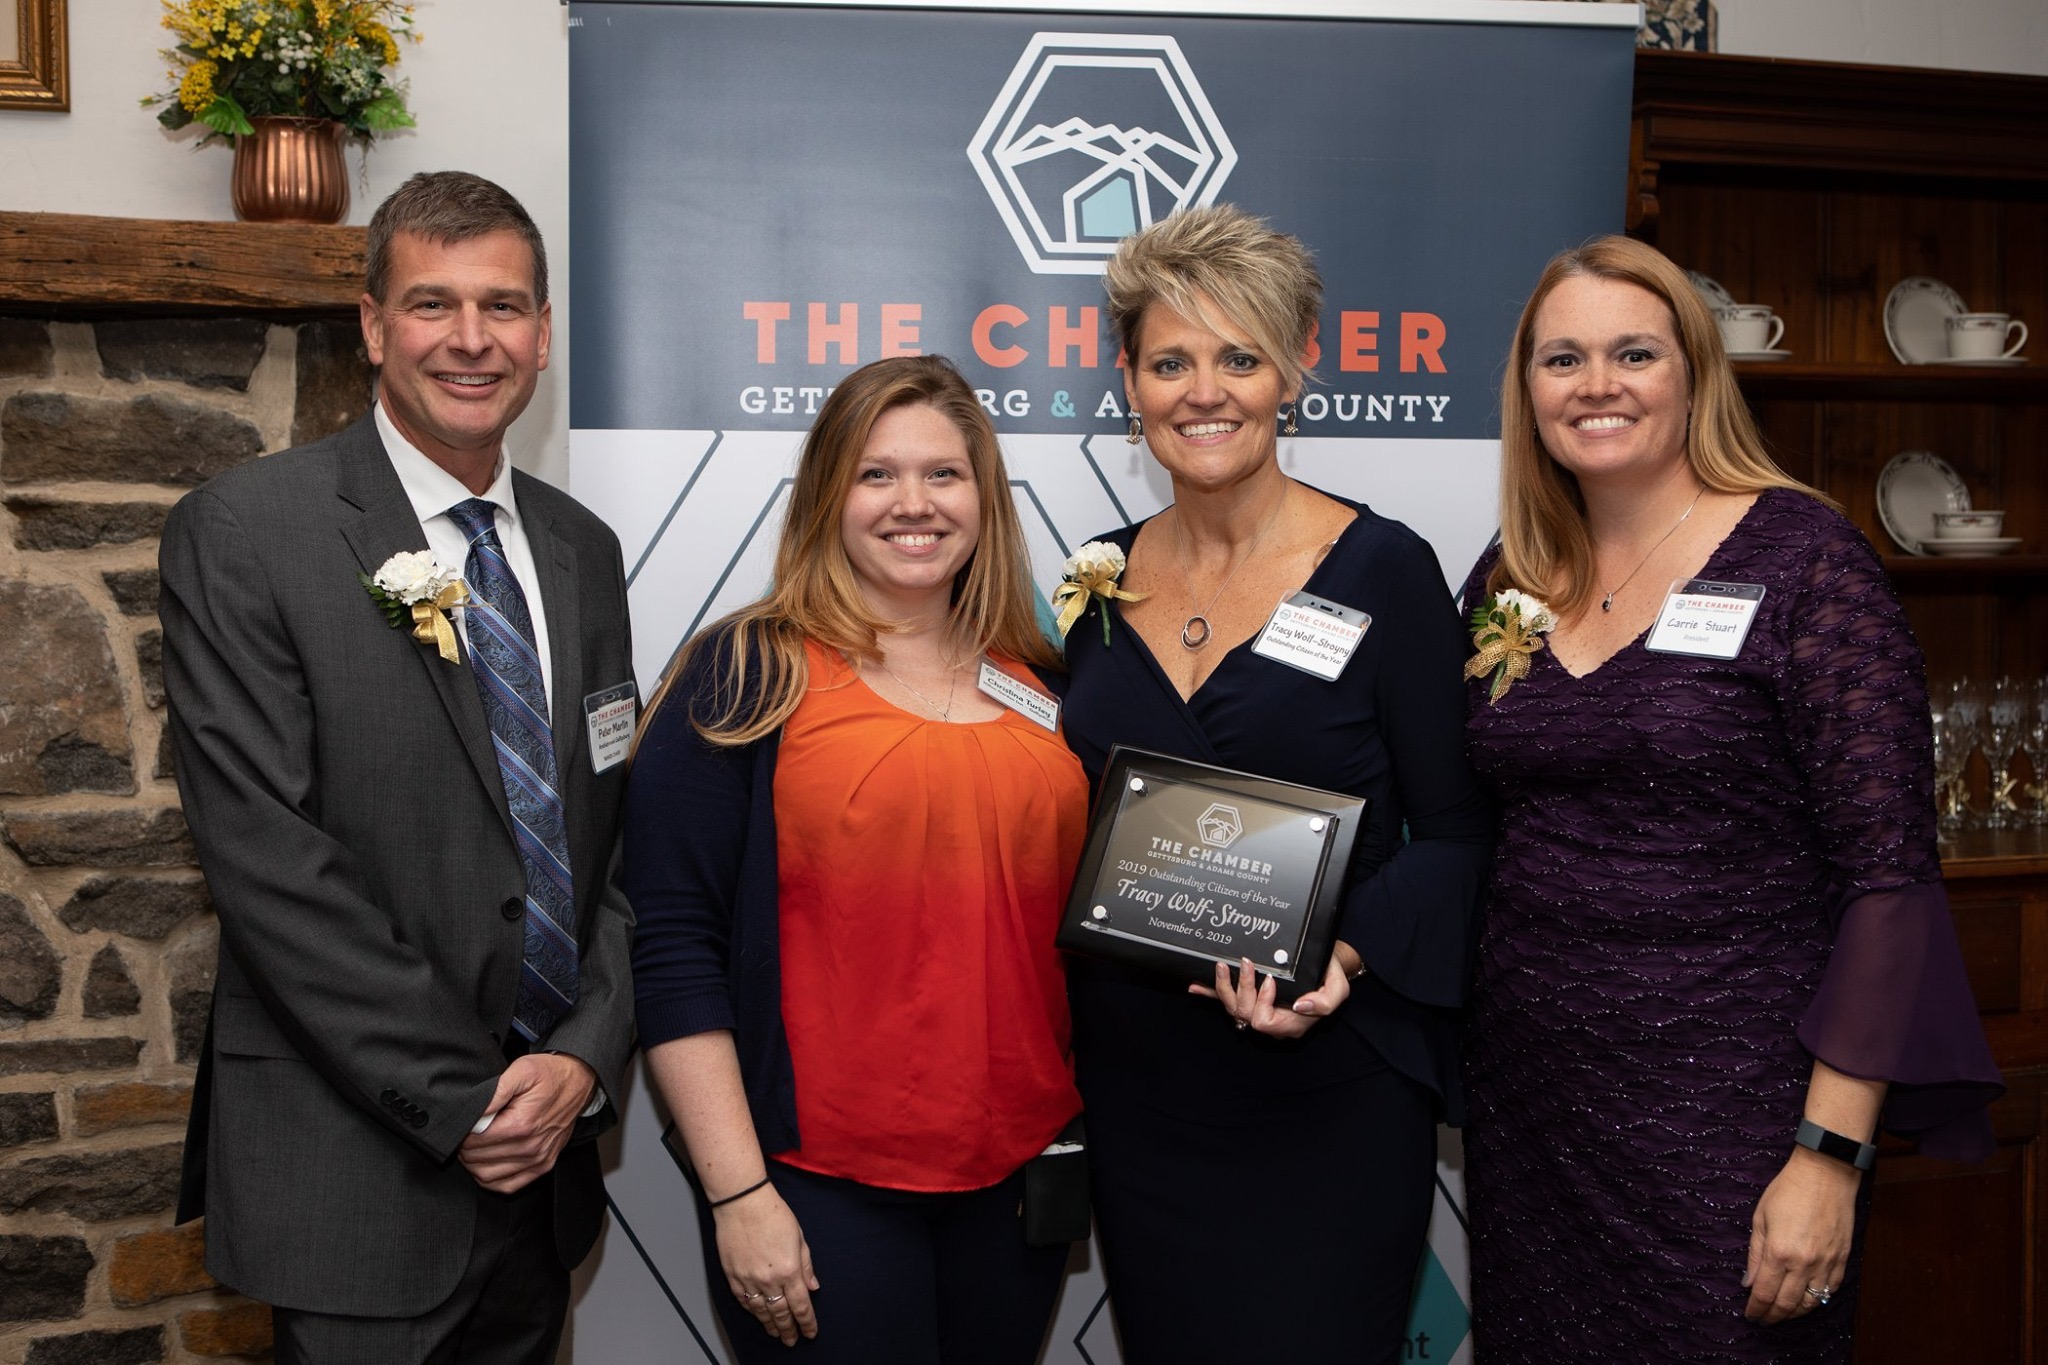 Chamber of Commerce Award Presenter